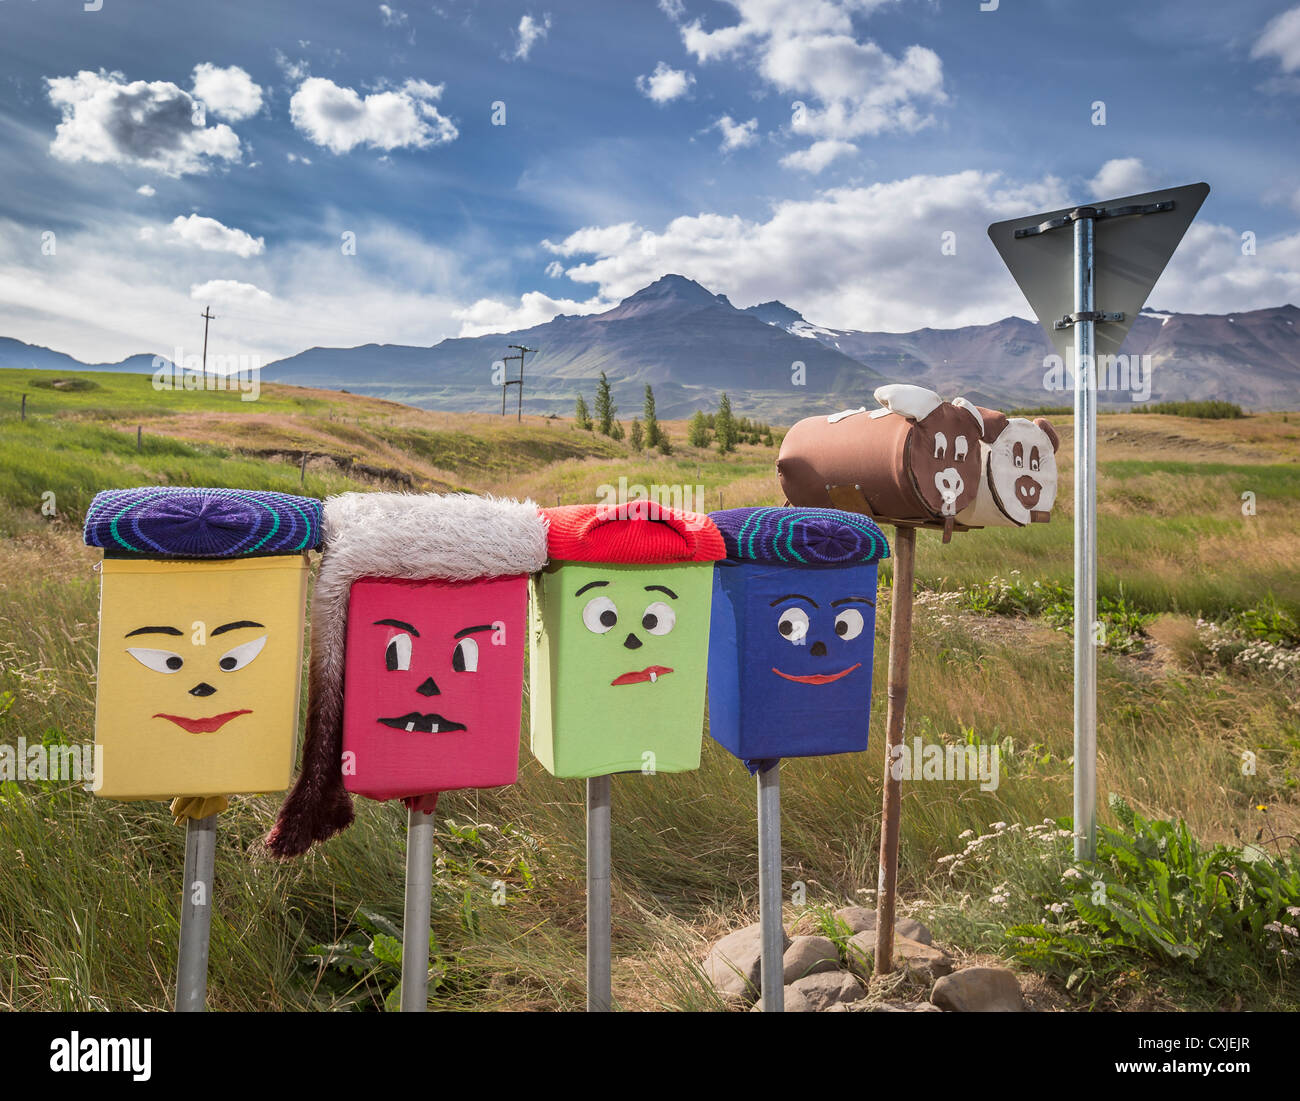 Decorated mailboxes, Northern Iceland - Stock Image